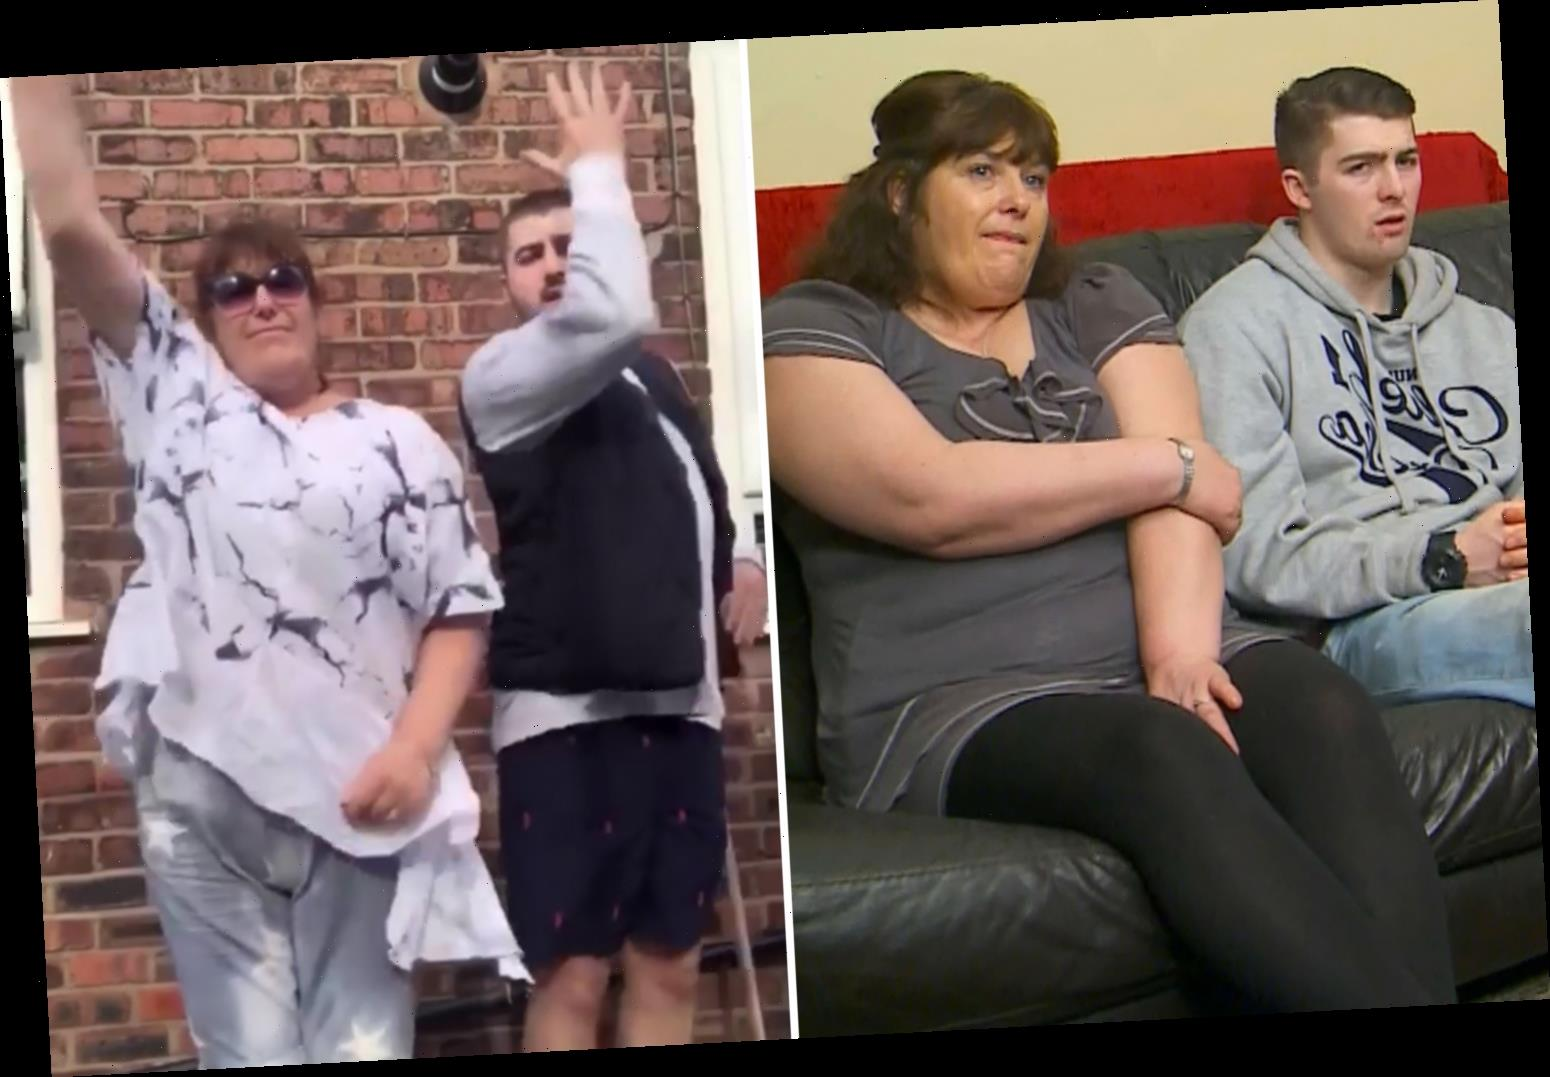 Gogglebox star Julie Malone shows off weight loss as the dances alongside TV star son Tom Jr